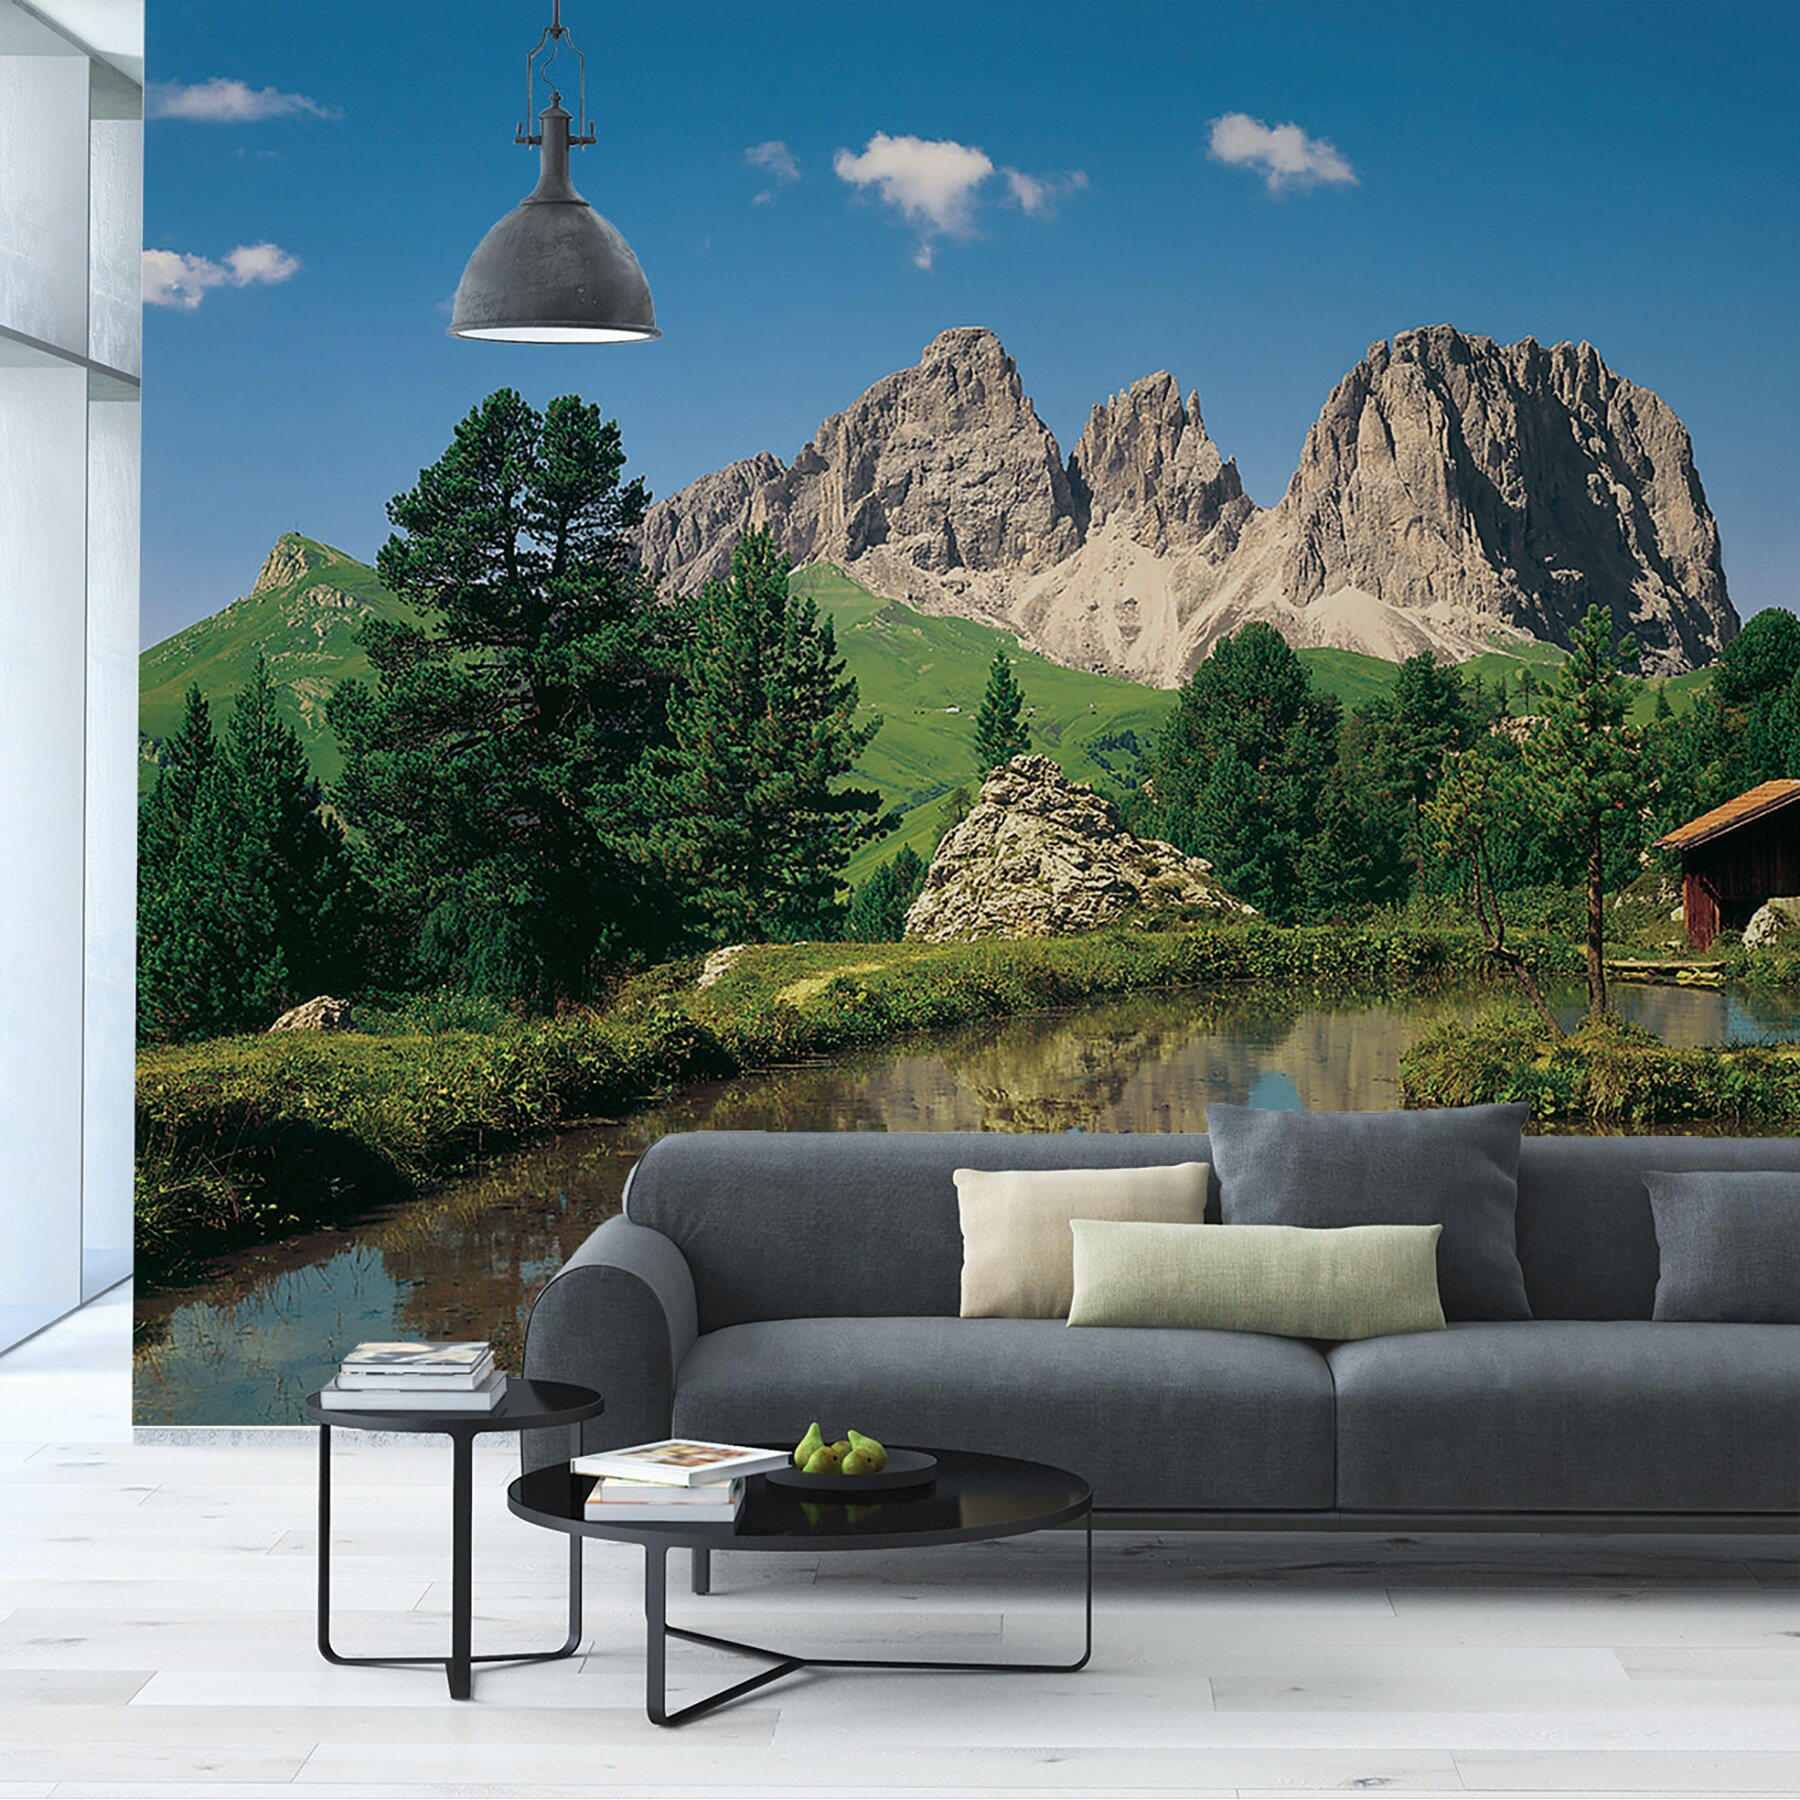 Komar dolomiten wall mural wayfair for Brewster birch wall mural